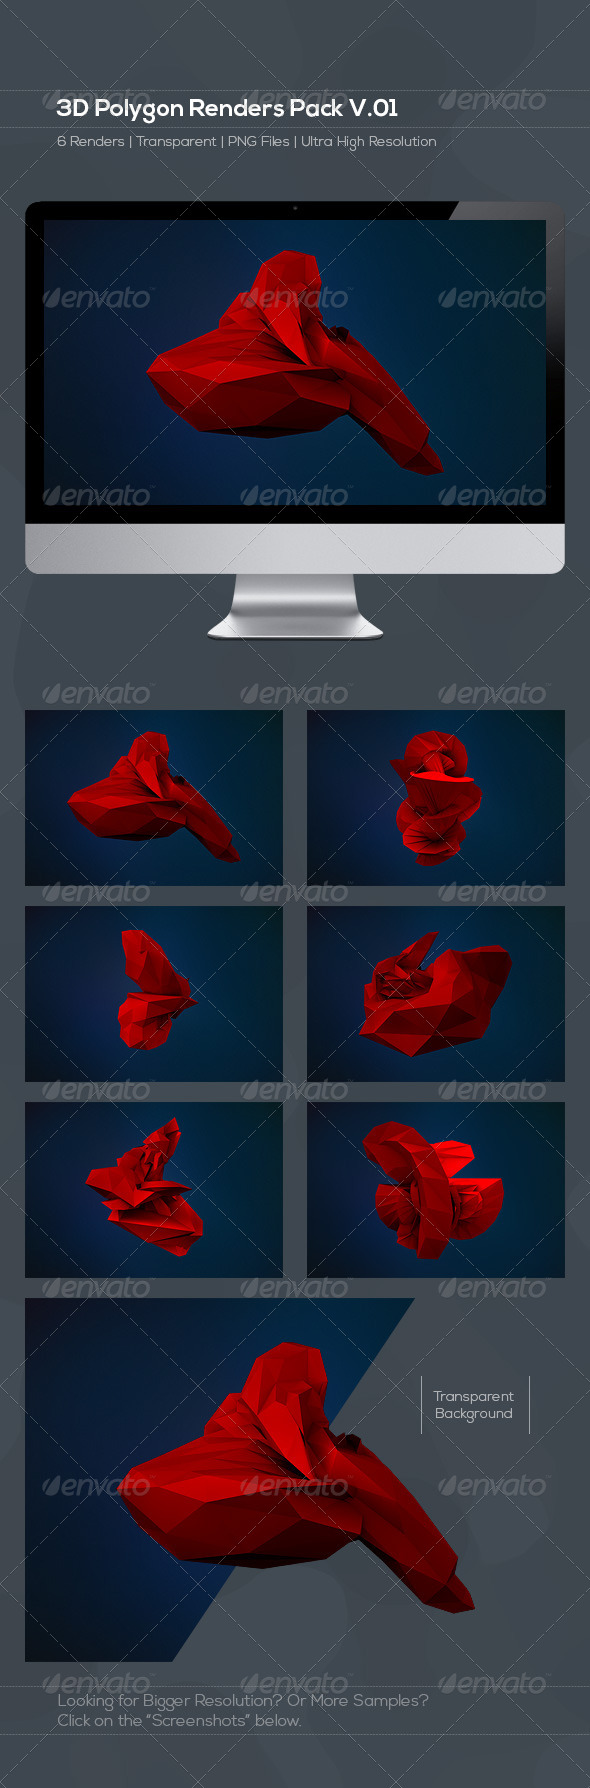 3D Polygon Renders Pack V.01 - Abstract 3D Renders